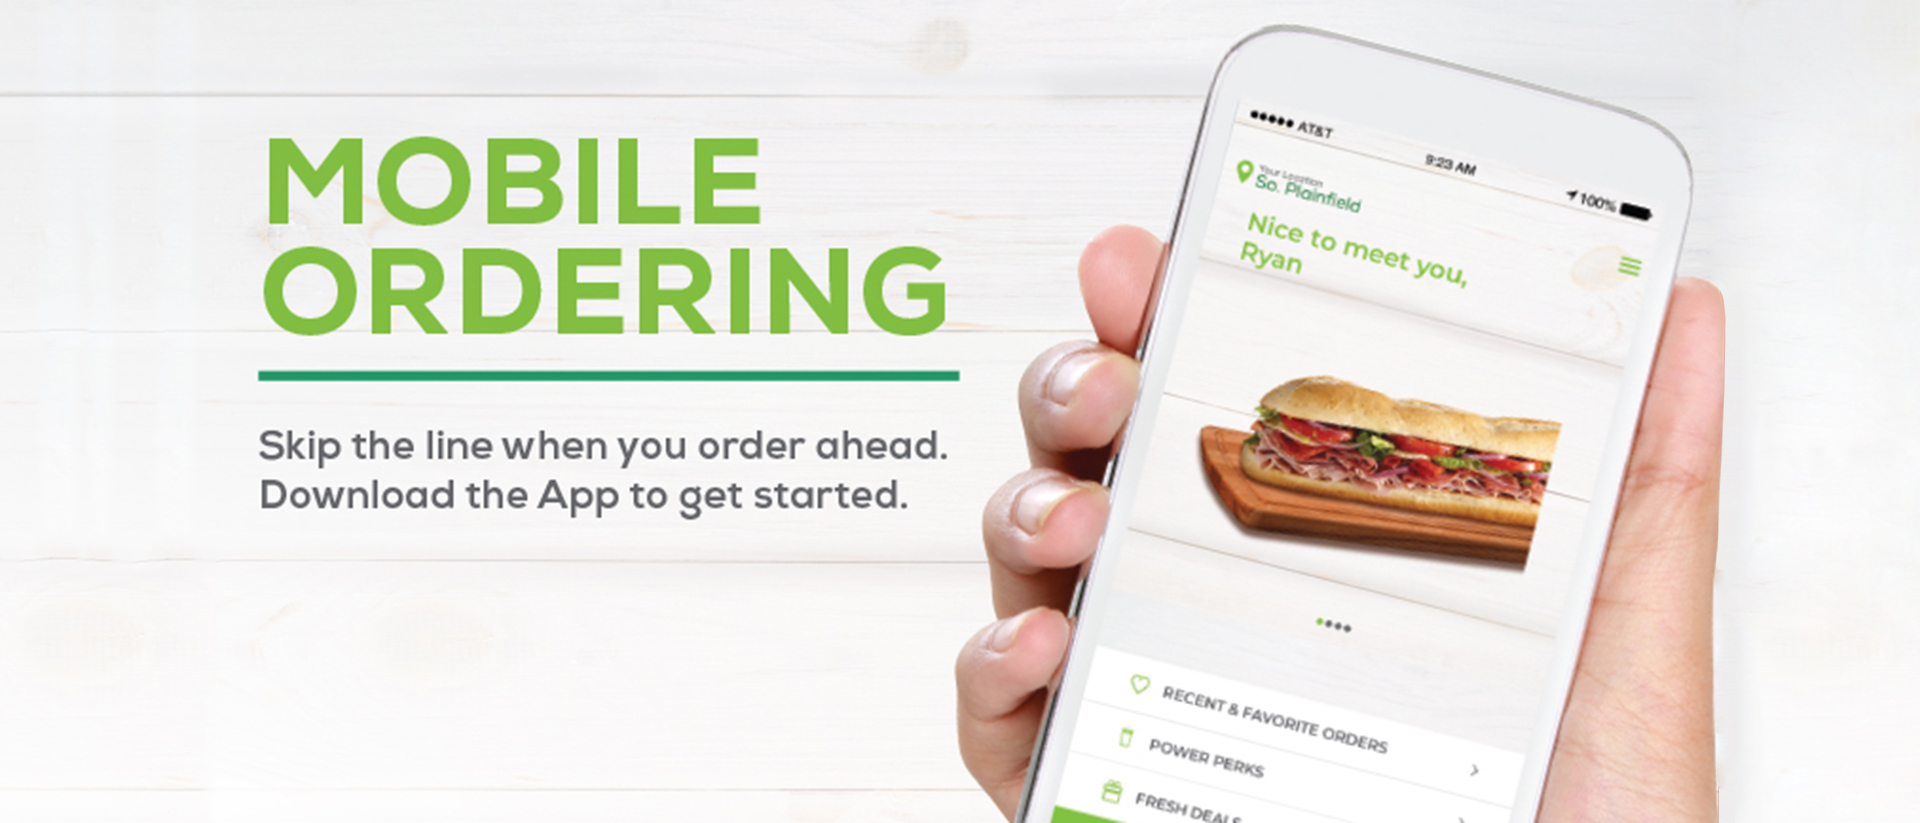 Digital Advertising and Development for QuickChek